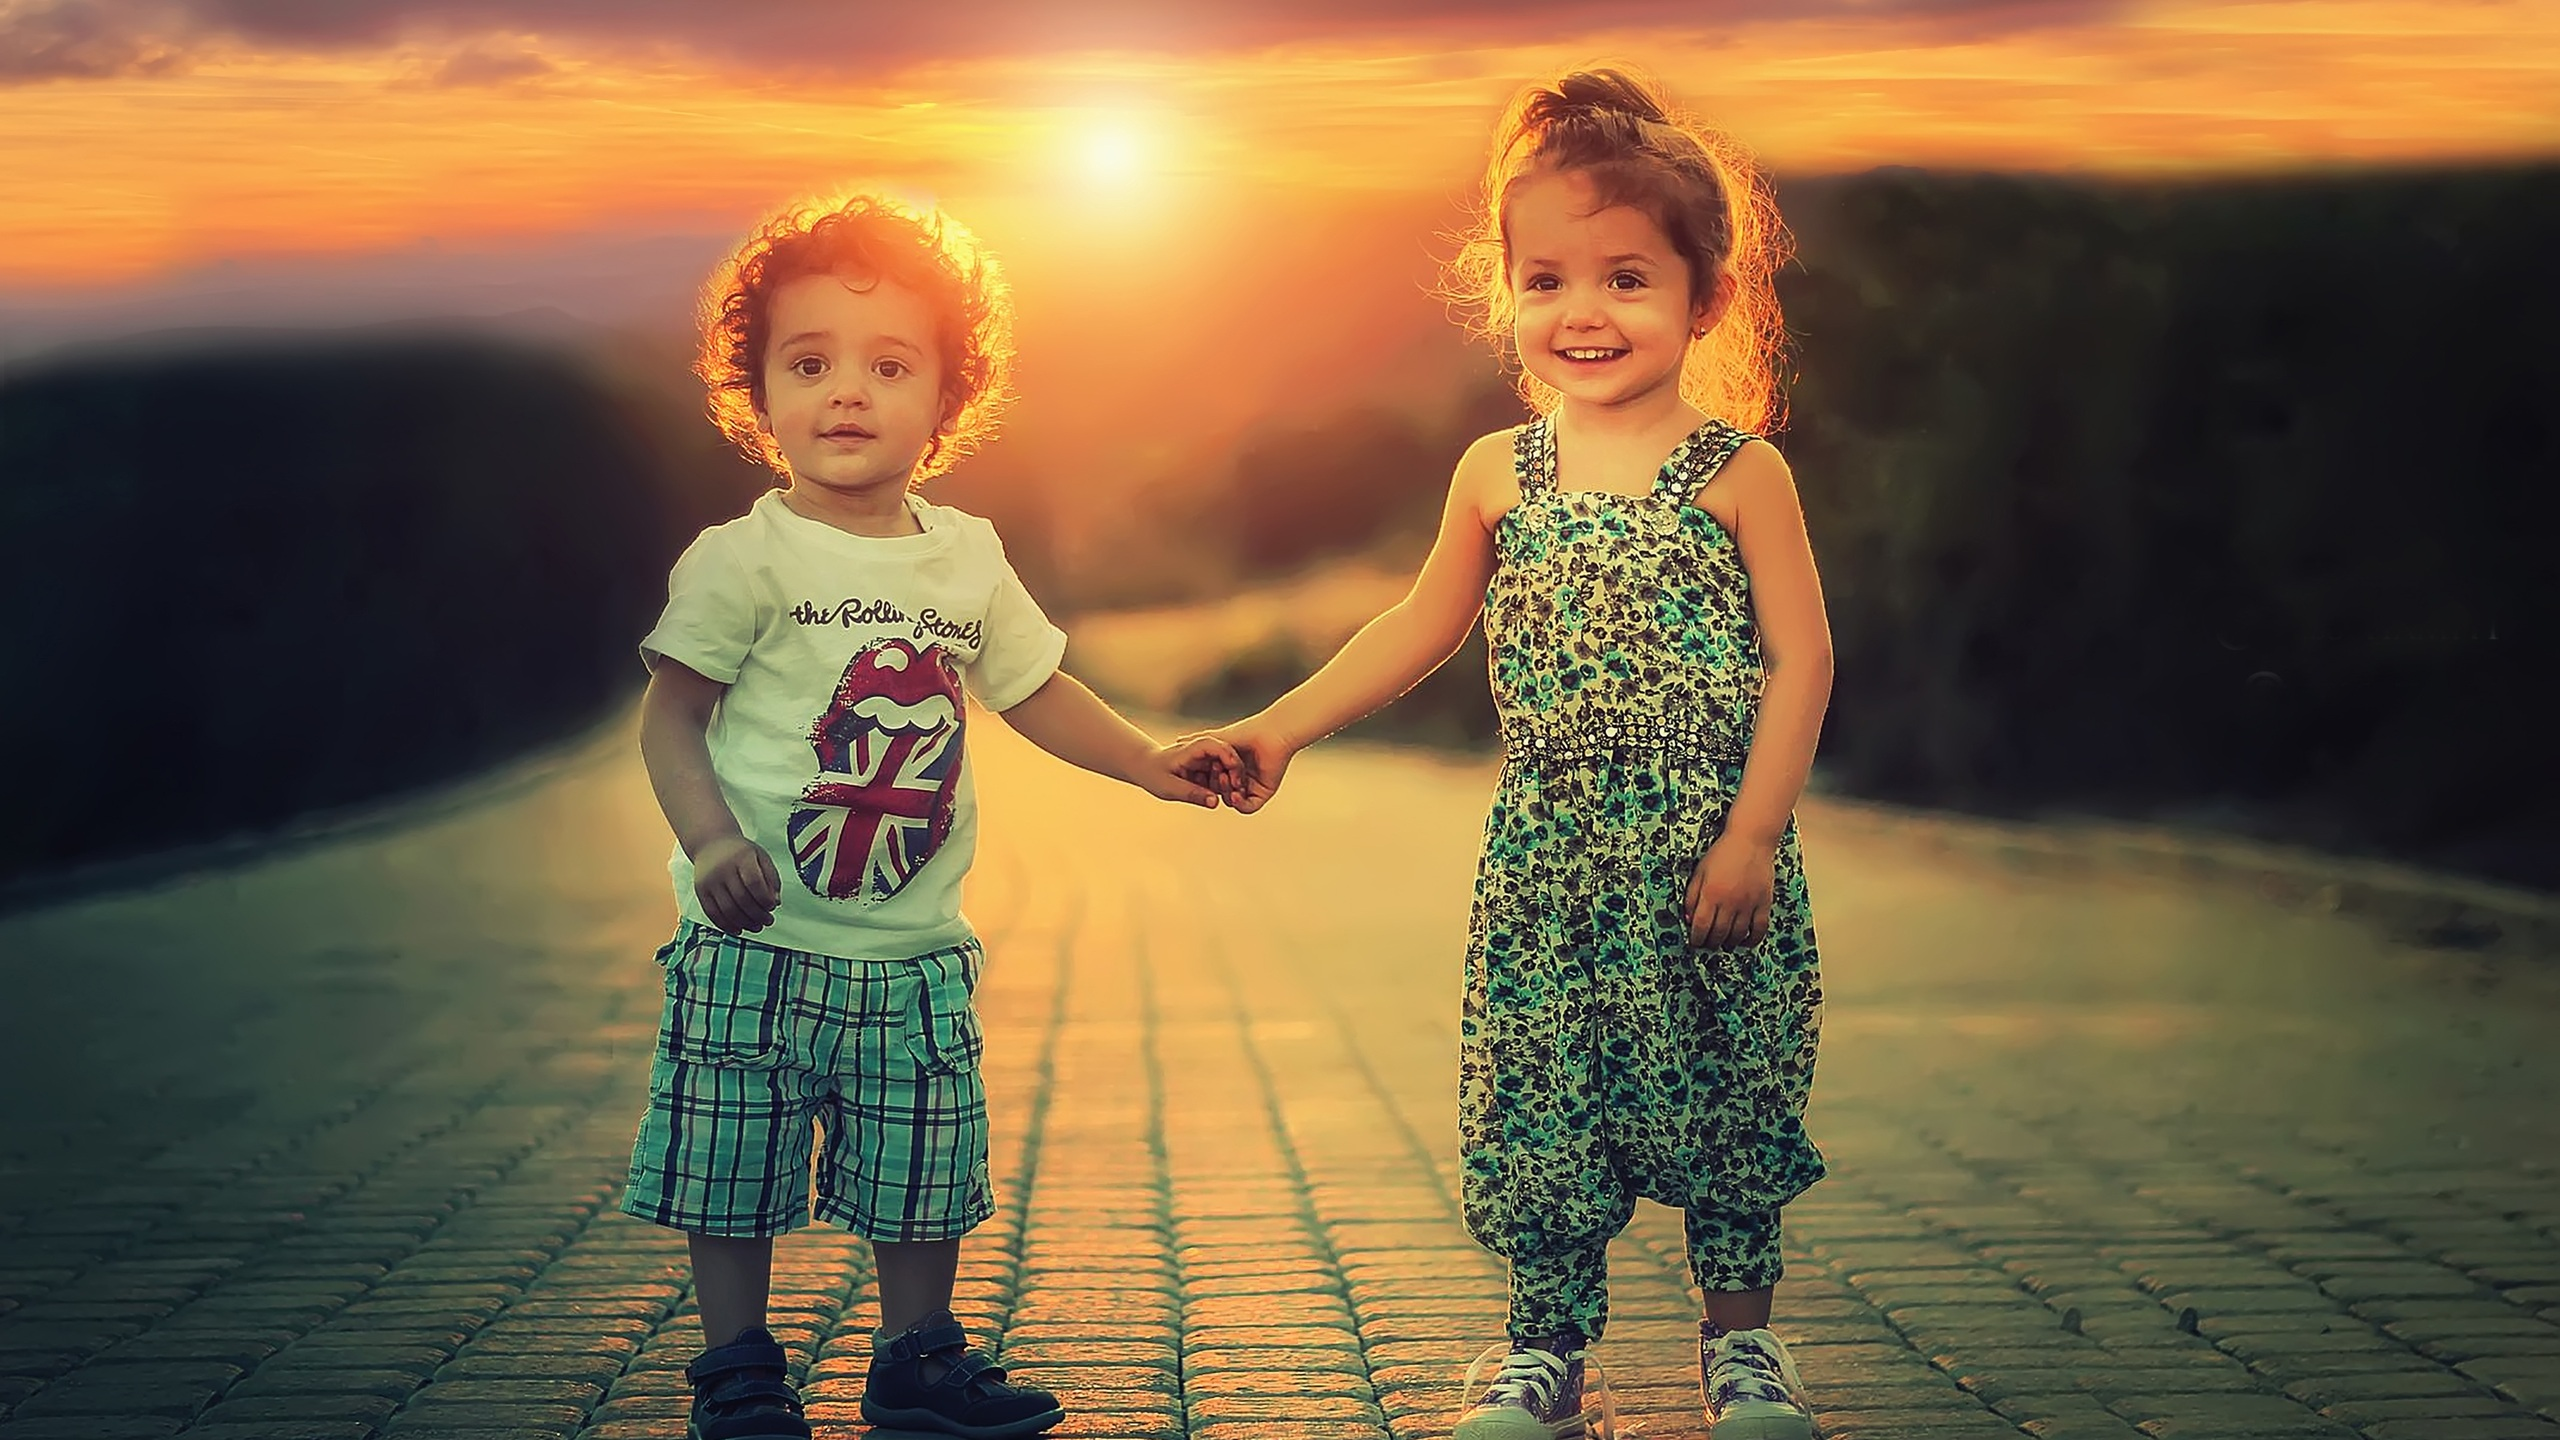 2560x1440 Children Happiness Portrait 5k 1440p Resolution Hd 4k Wallpapers Images Backgrounds Photos And Pictures